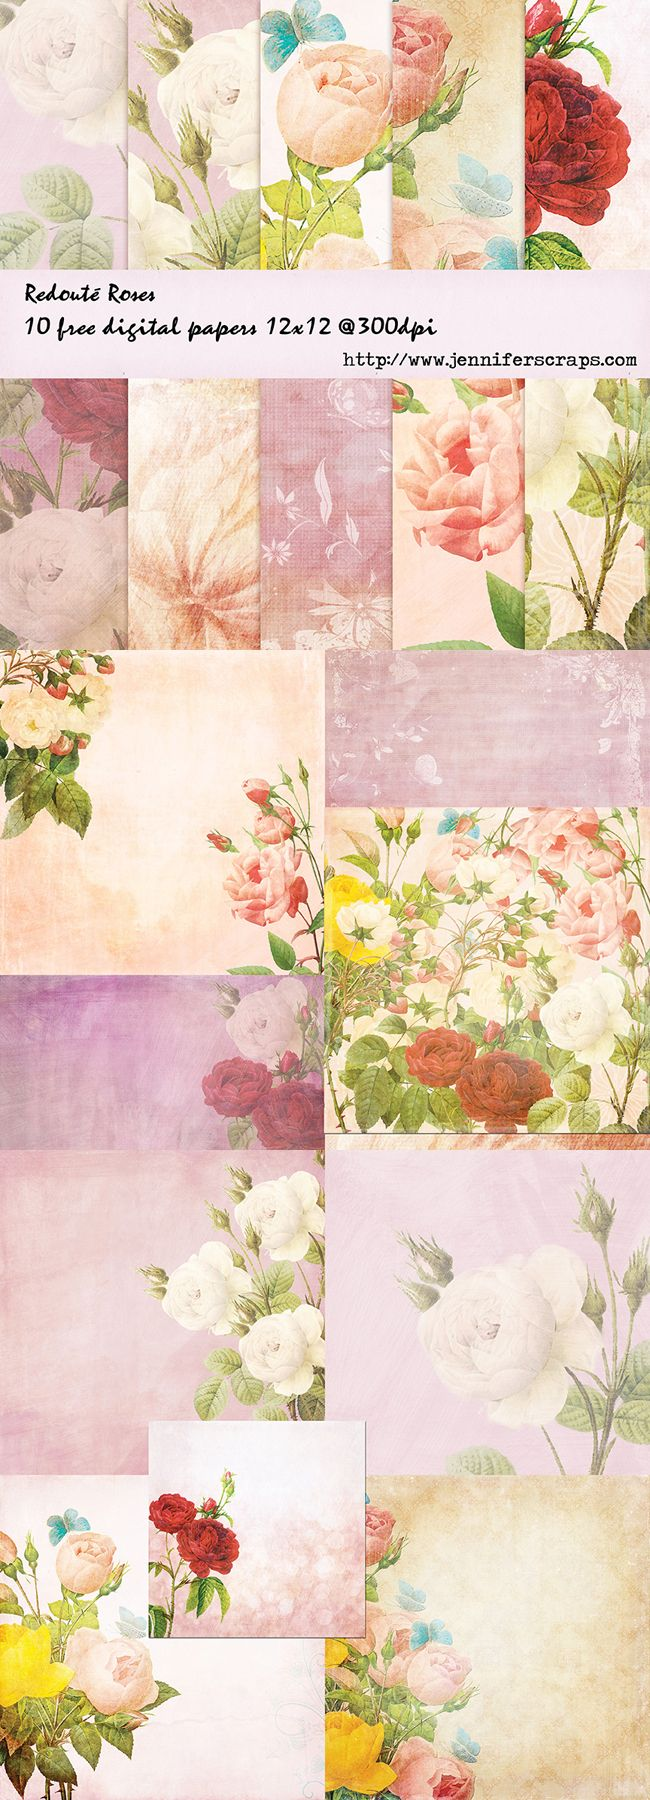 Scrapbook paper dogs - Free Printable Redoute Rose Digital Scrapbooking Papers From Free Pretty Things For You And Jennifer Scraps